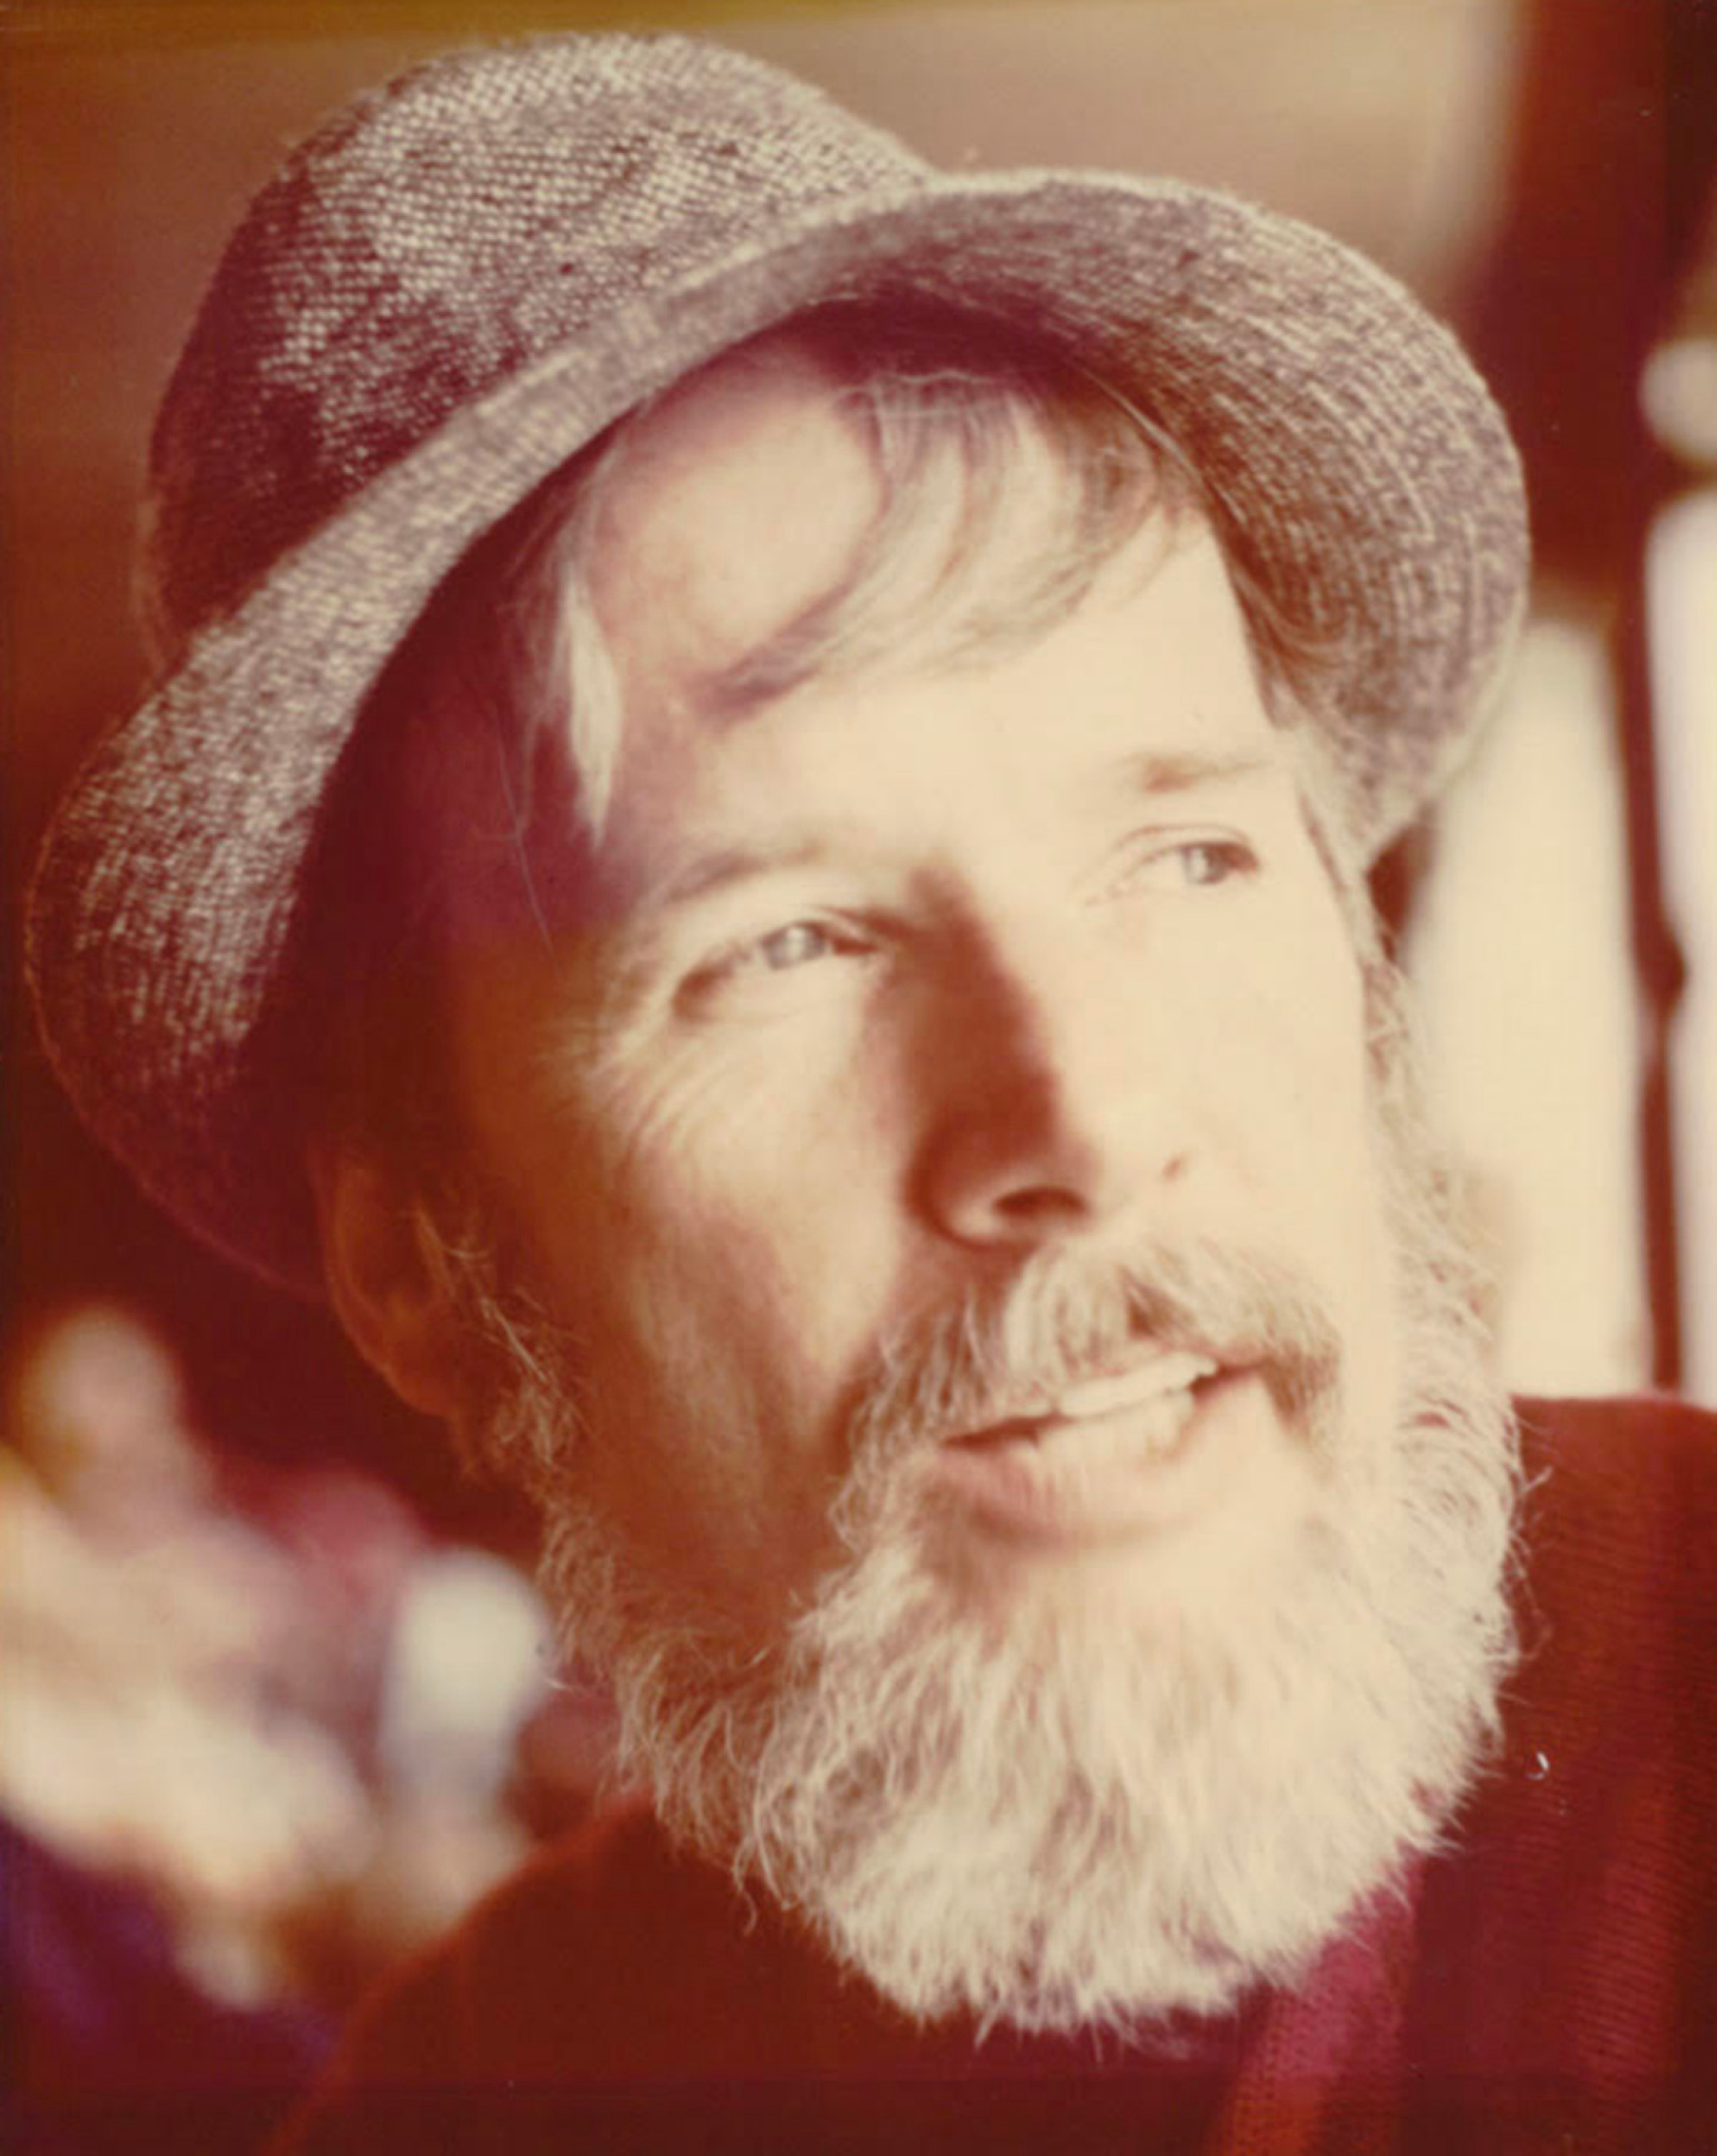 Jack Fincher sports a white beard and moustache, plus a fedora, in this sepia-toned photograph.